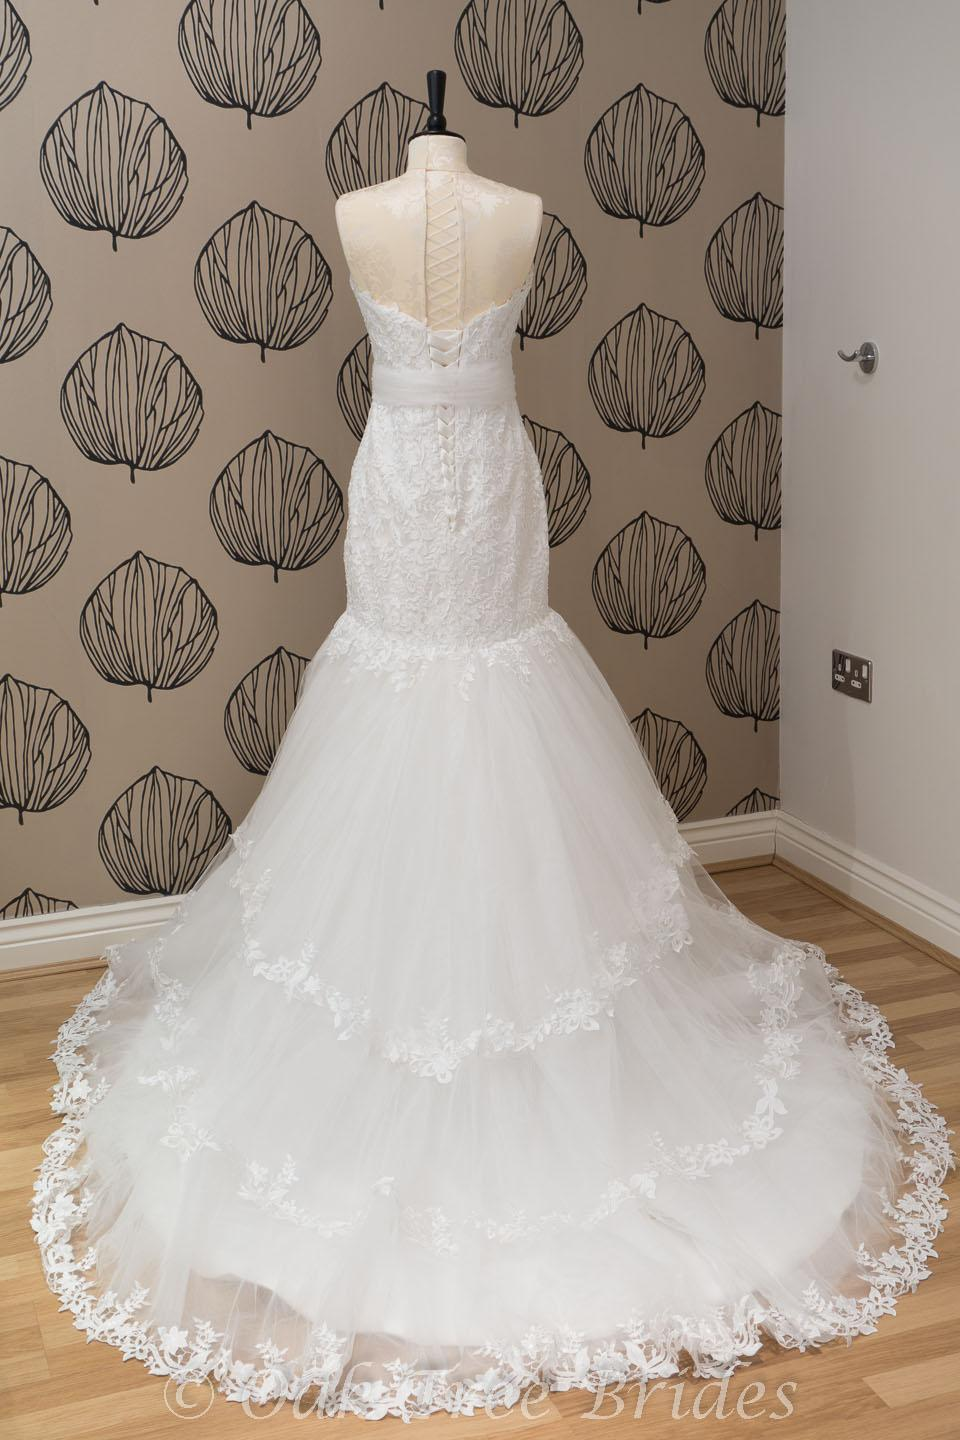 second hand wedding dresses online second hand wedding dresses Second Hand Wedding Dresses Top Preloved and Preowned Wedding Dresses directory Buy beautiful designer second hand wedding dresses at the fraction of their